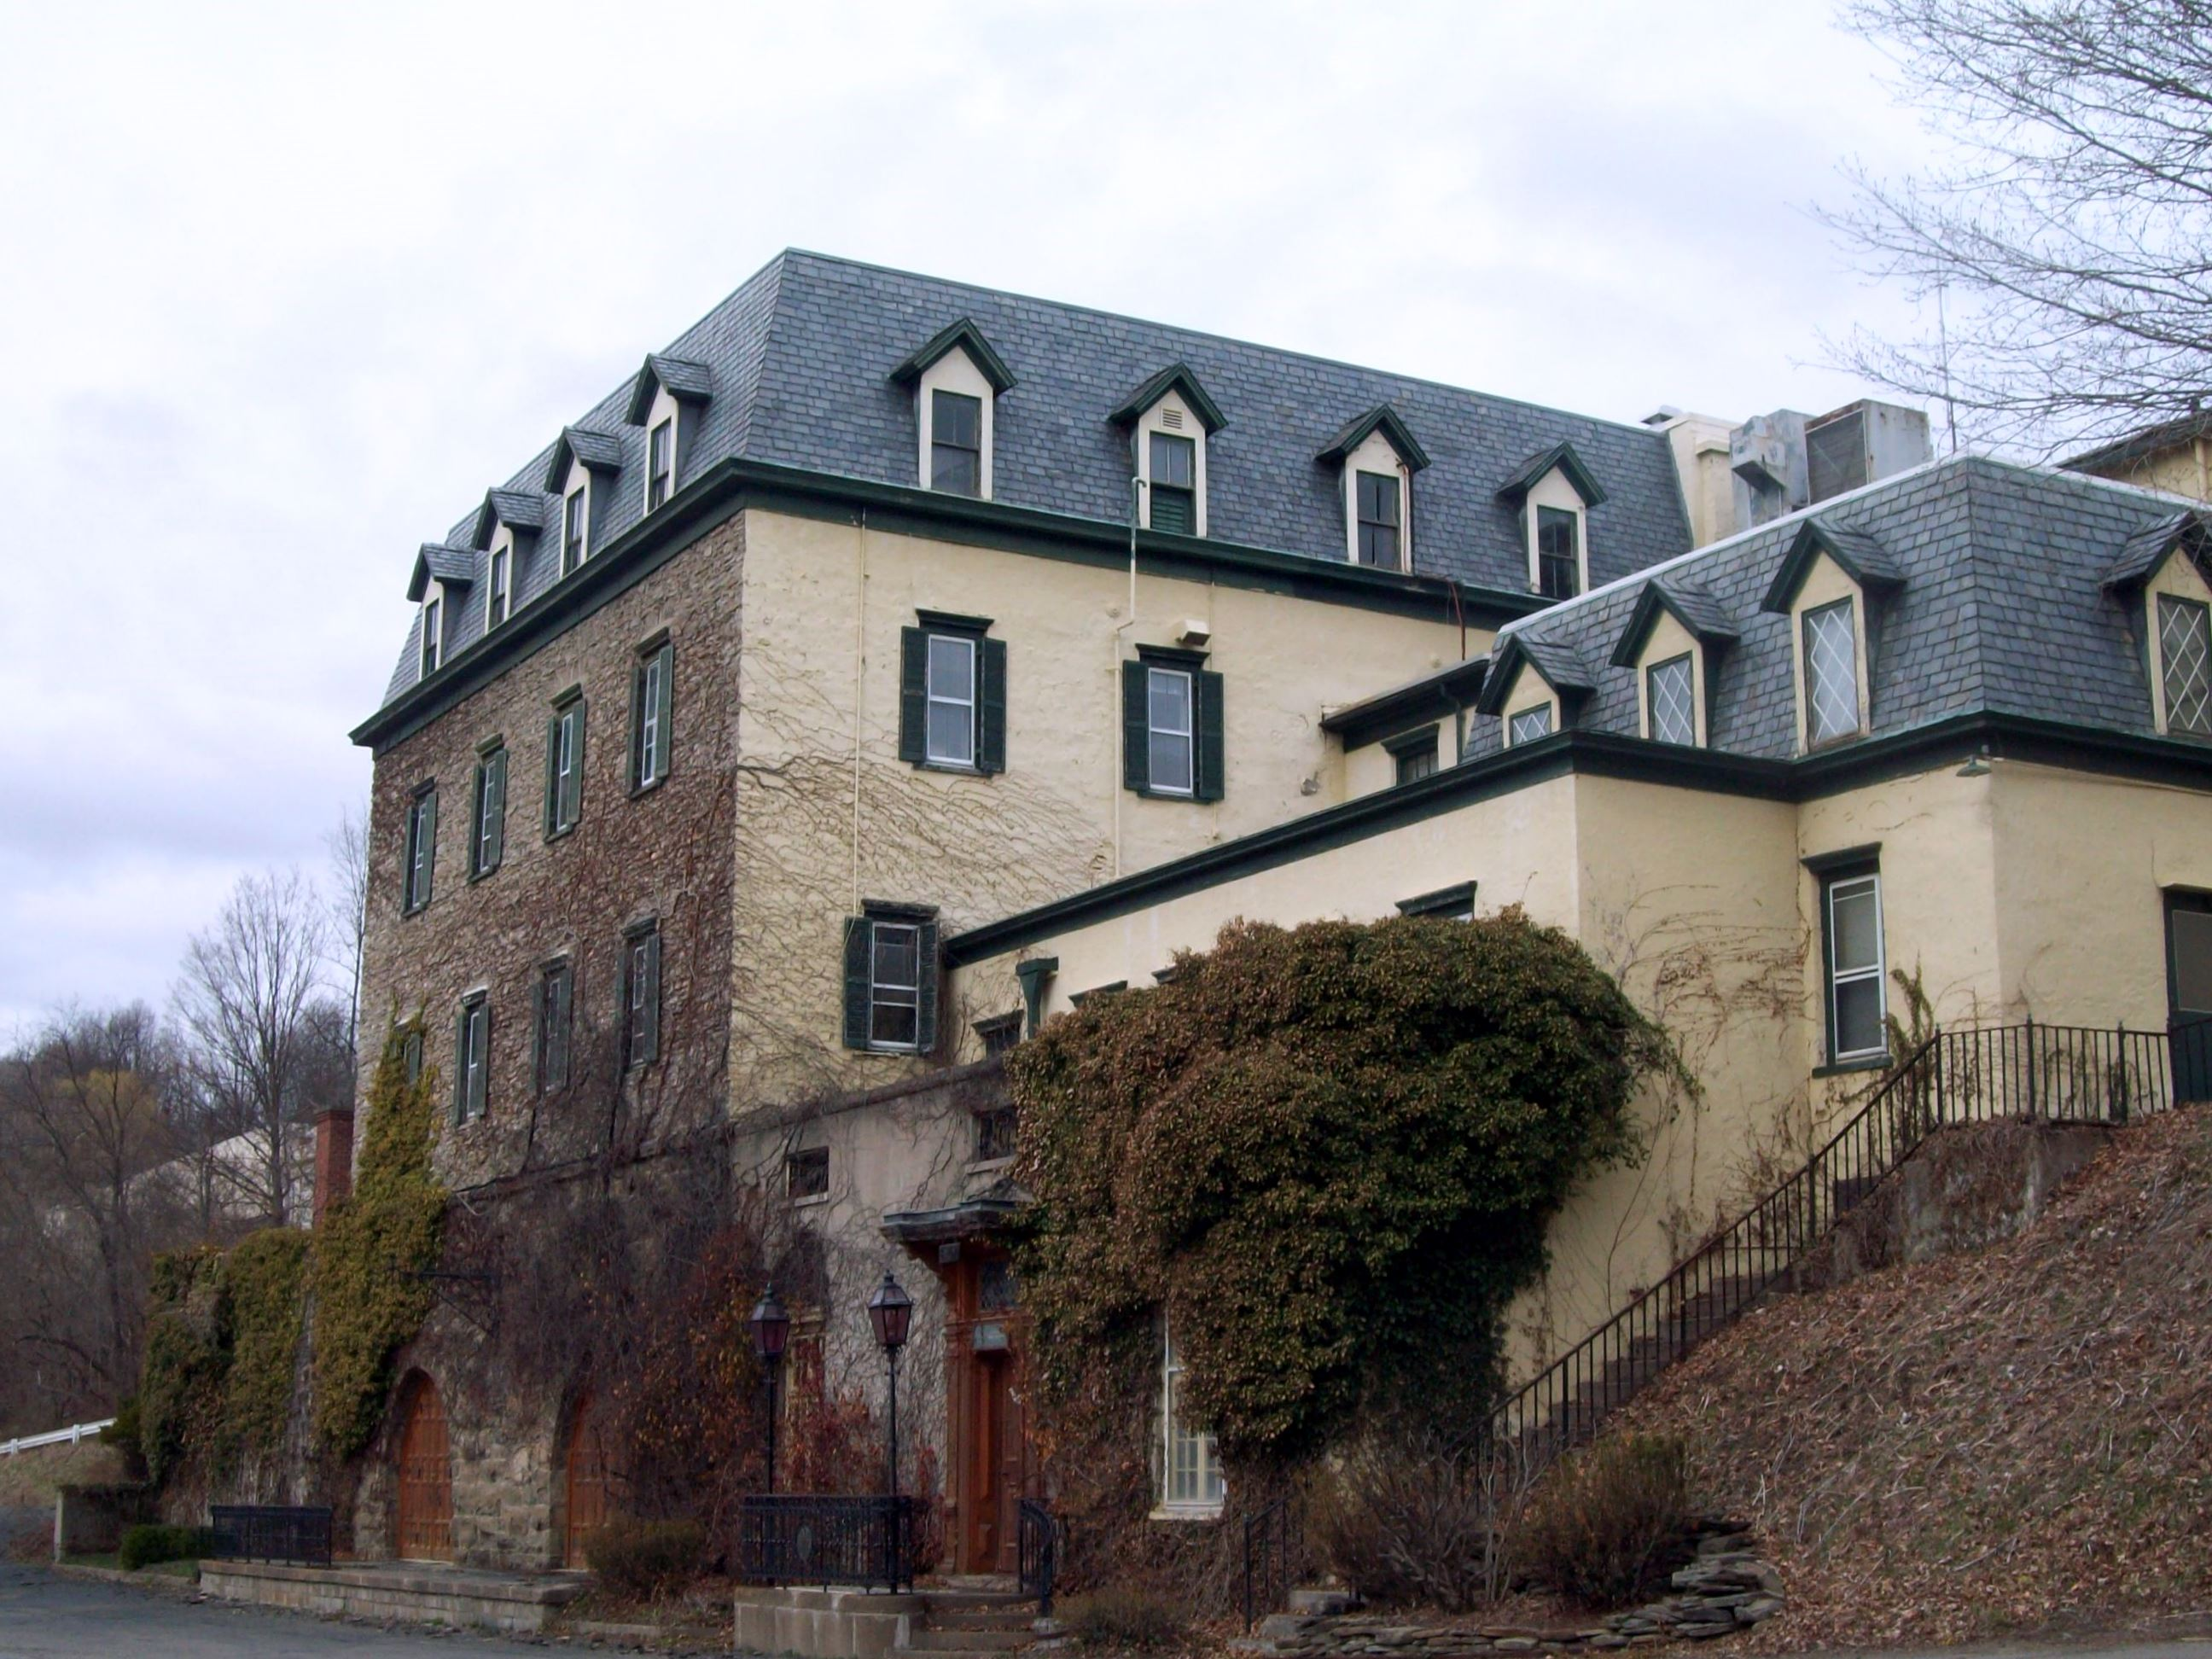 pleasant valley Get easy access to 21 apartments for rent in pleasant valley, ny on realtorcom® find the ideal pleasant valley apartments today.